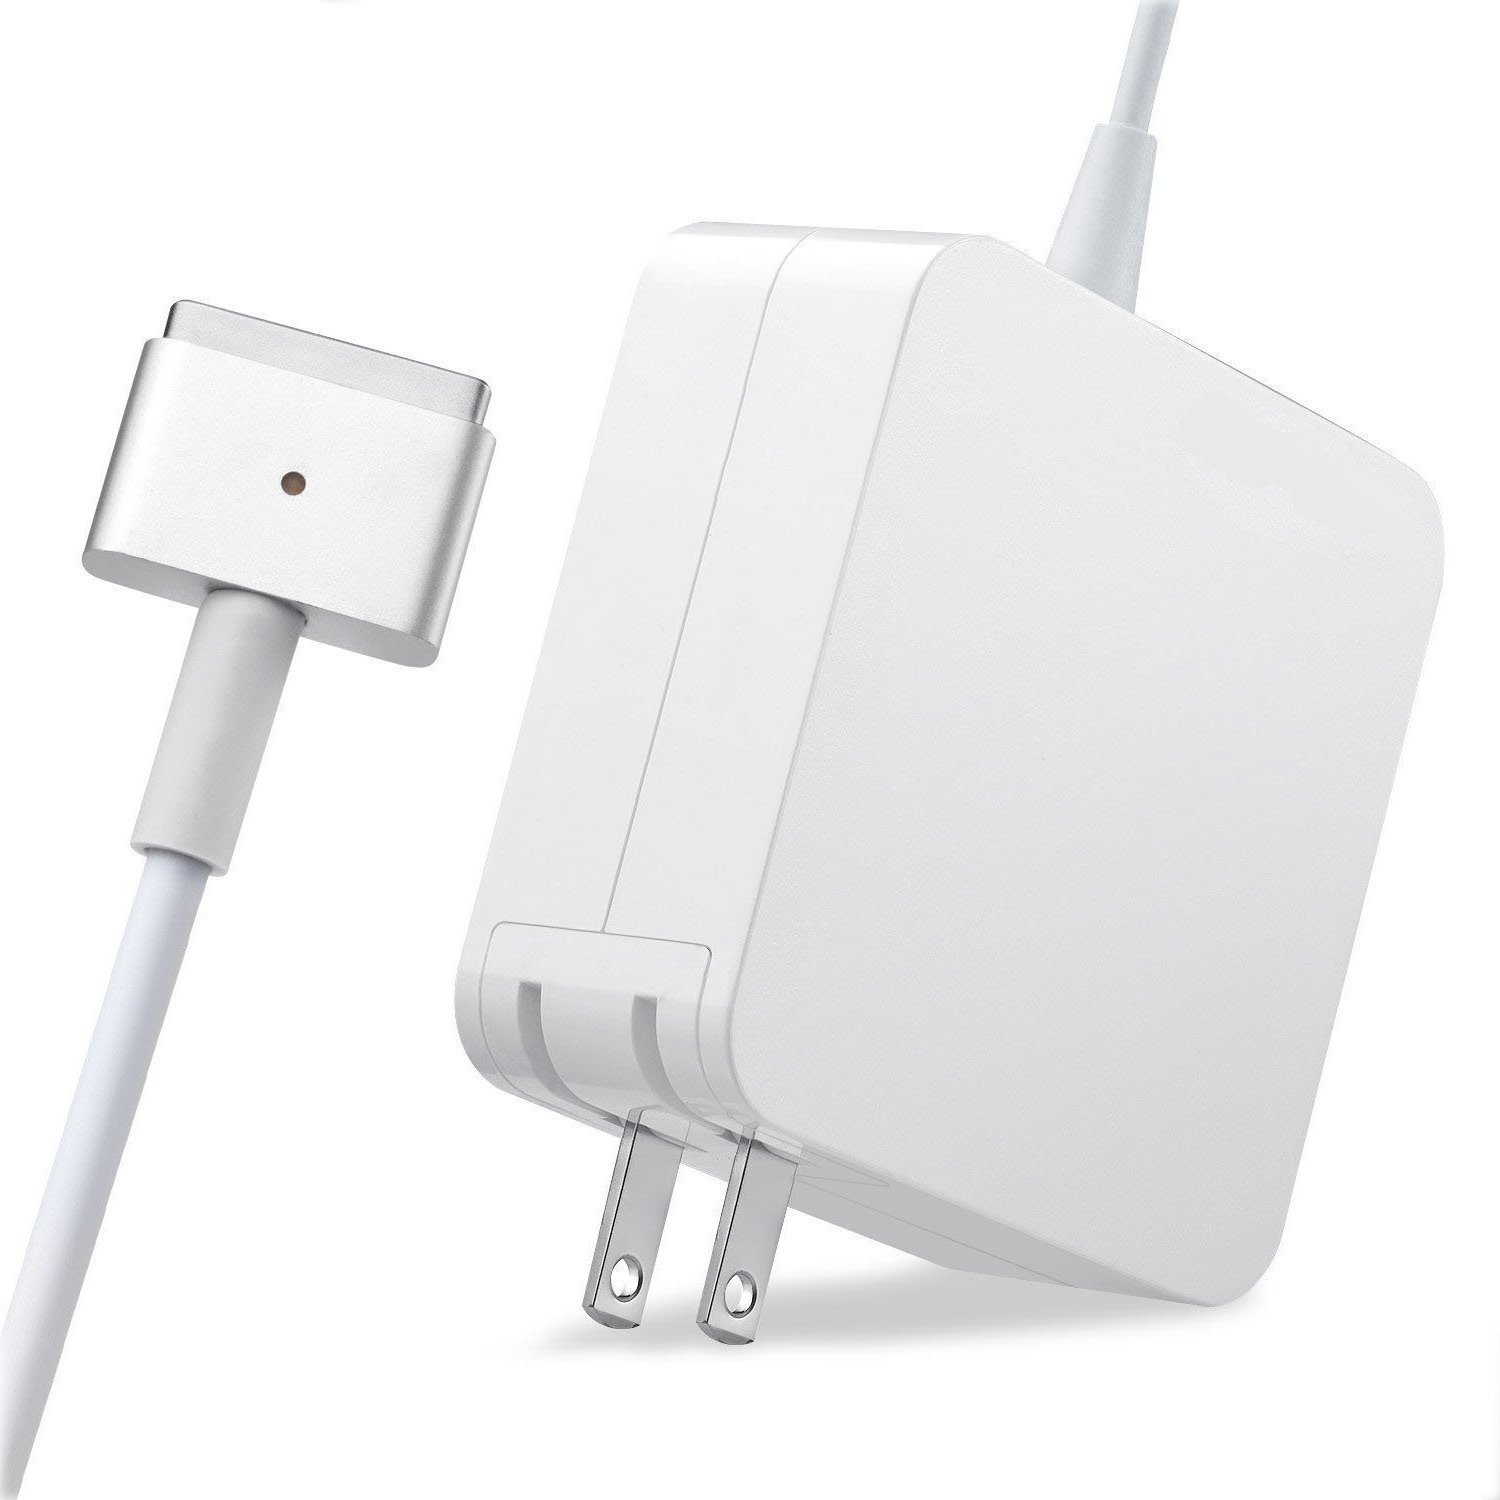 MacBook Pro Charger R60-T,MacBook Air Charger Replacement 60W Magsafe 2 Magnetic T-Tip Power Adapter Charger for Apple MacBook Retina-After Late 2012 by SODYSNAY (Image #1)